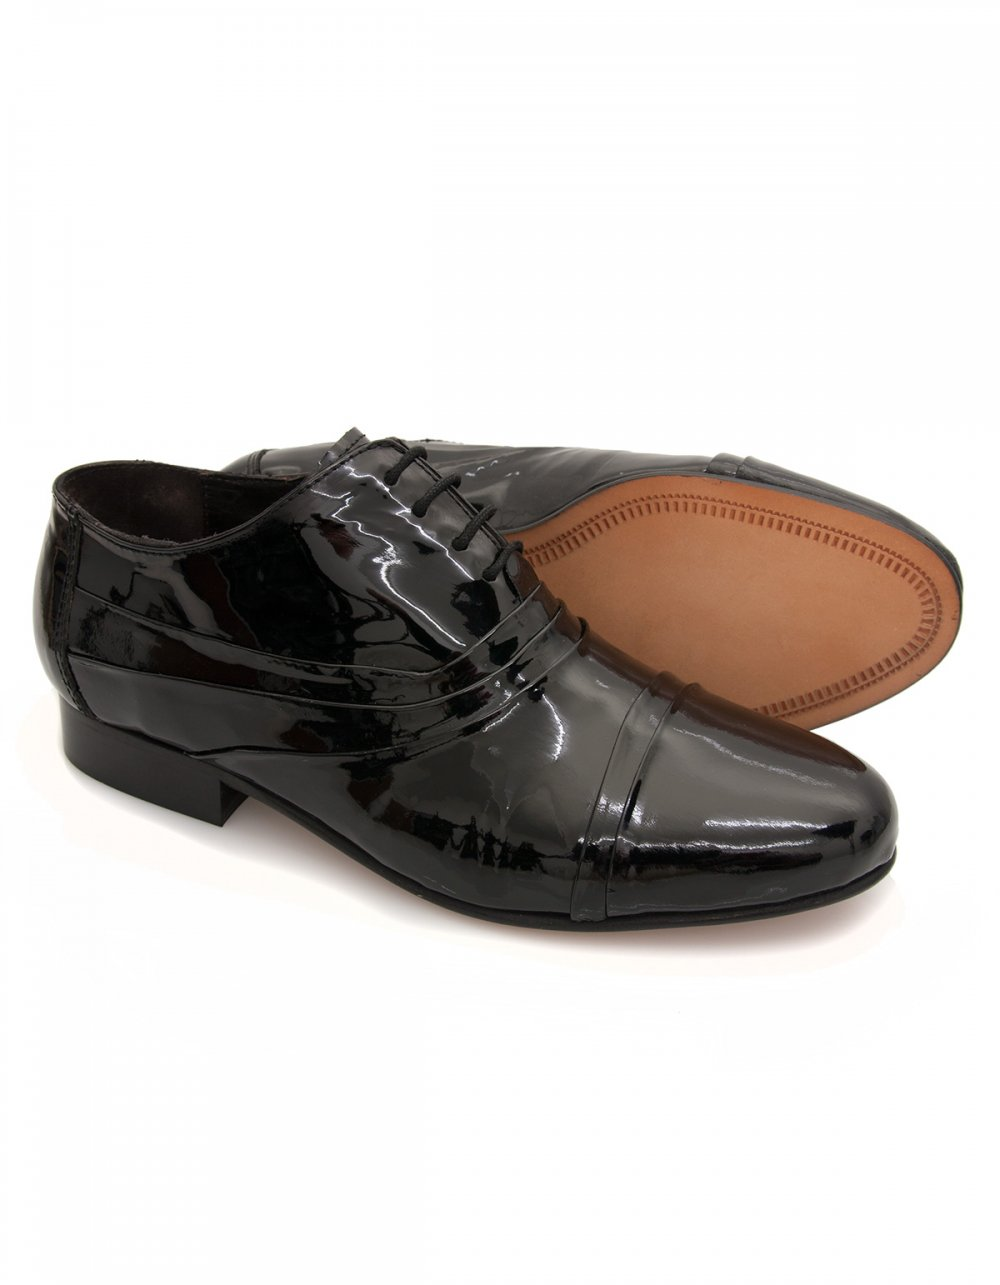 maybury patent leather dress shoes lace up